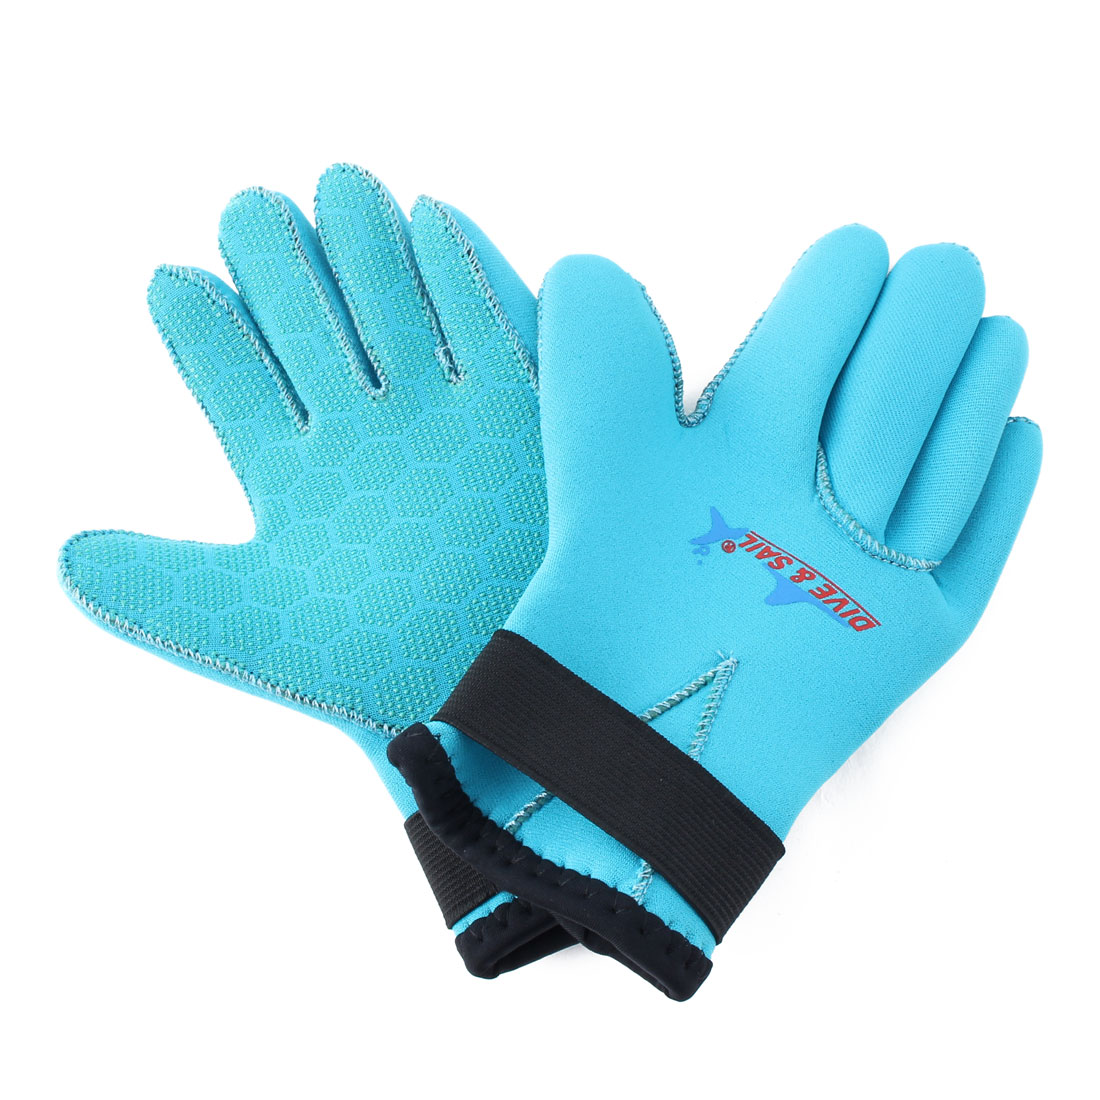 DIVE&SAIL Authorized Snorkeling Surfing Spearfishing Water Sports Warm Diving Gloves Blue Size S Pair for Child Youth